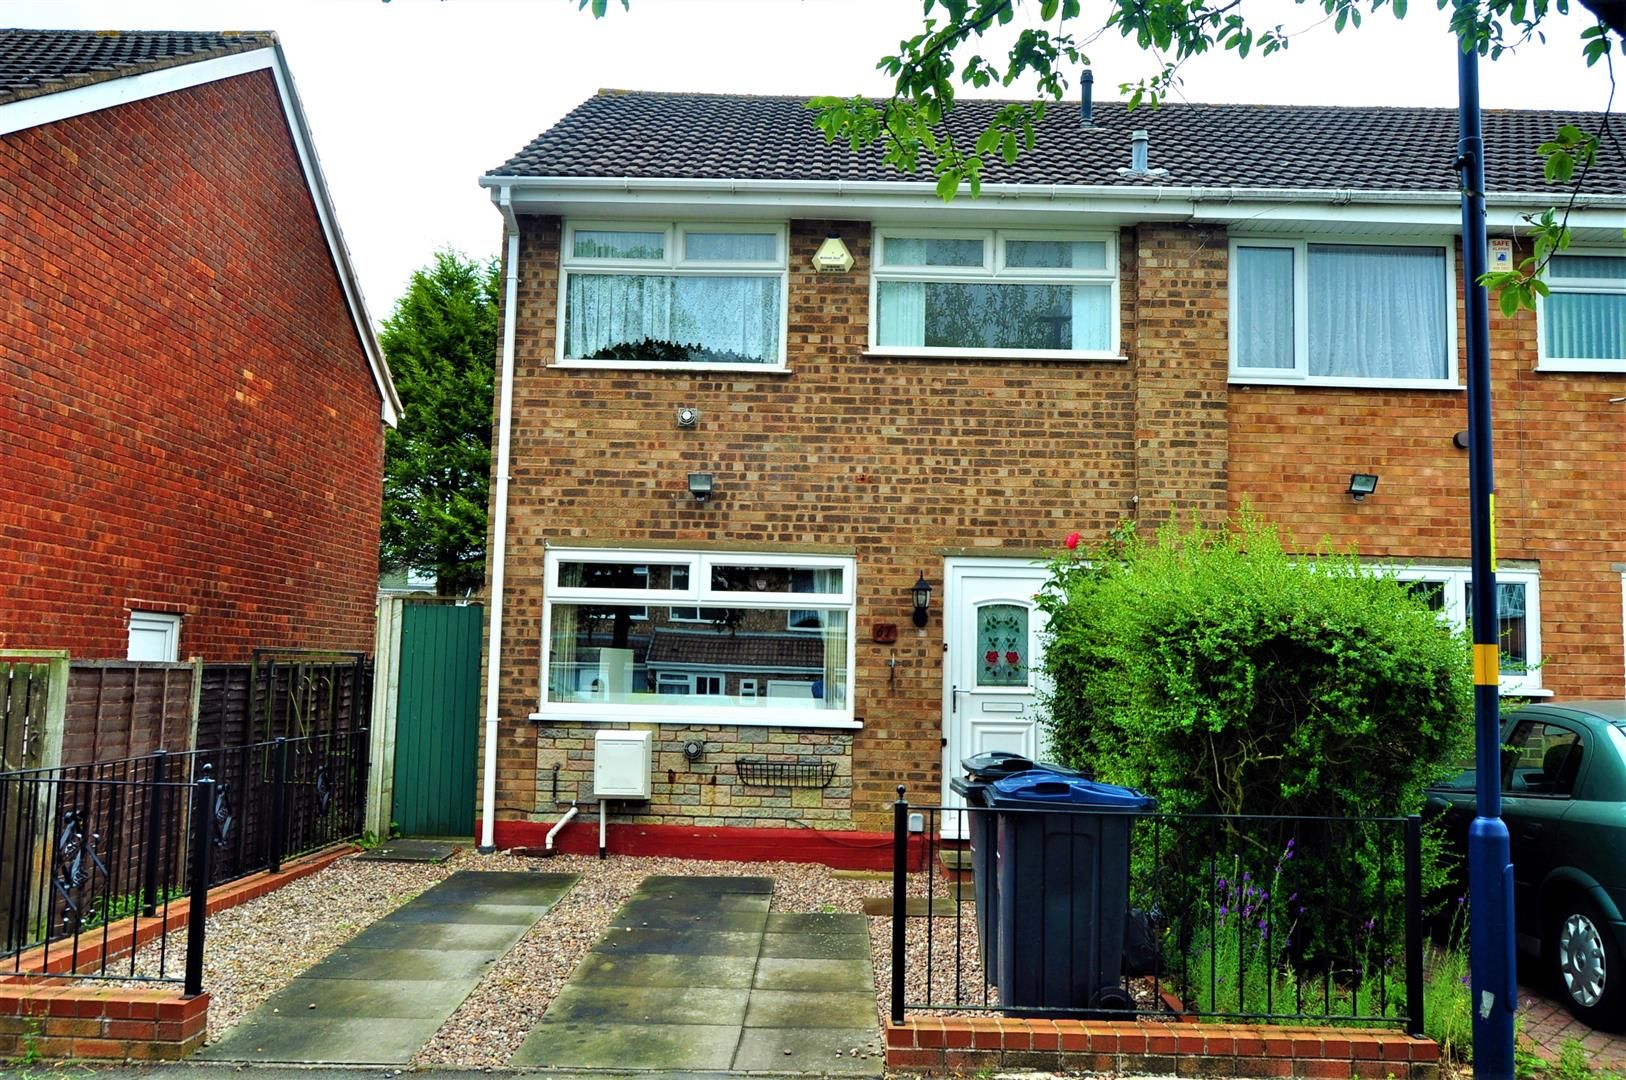 3 bed end-of-terrace for sale in Quinton 1